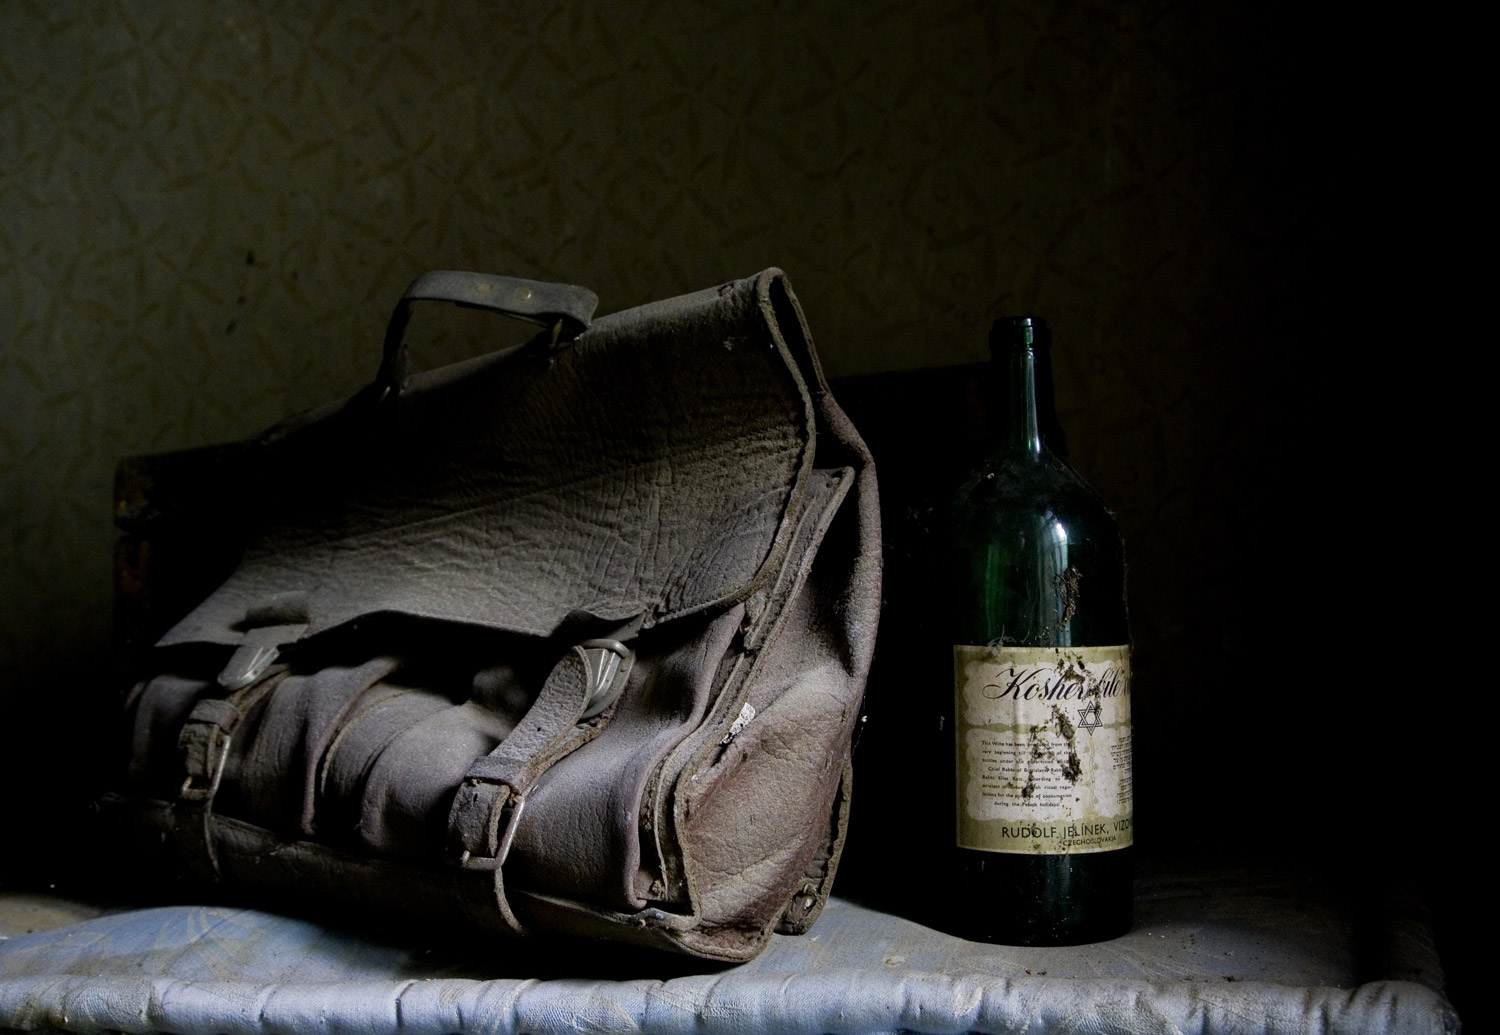 A satchel found in the attic at the school in Bardejov